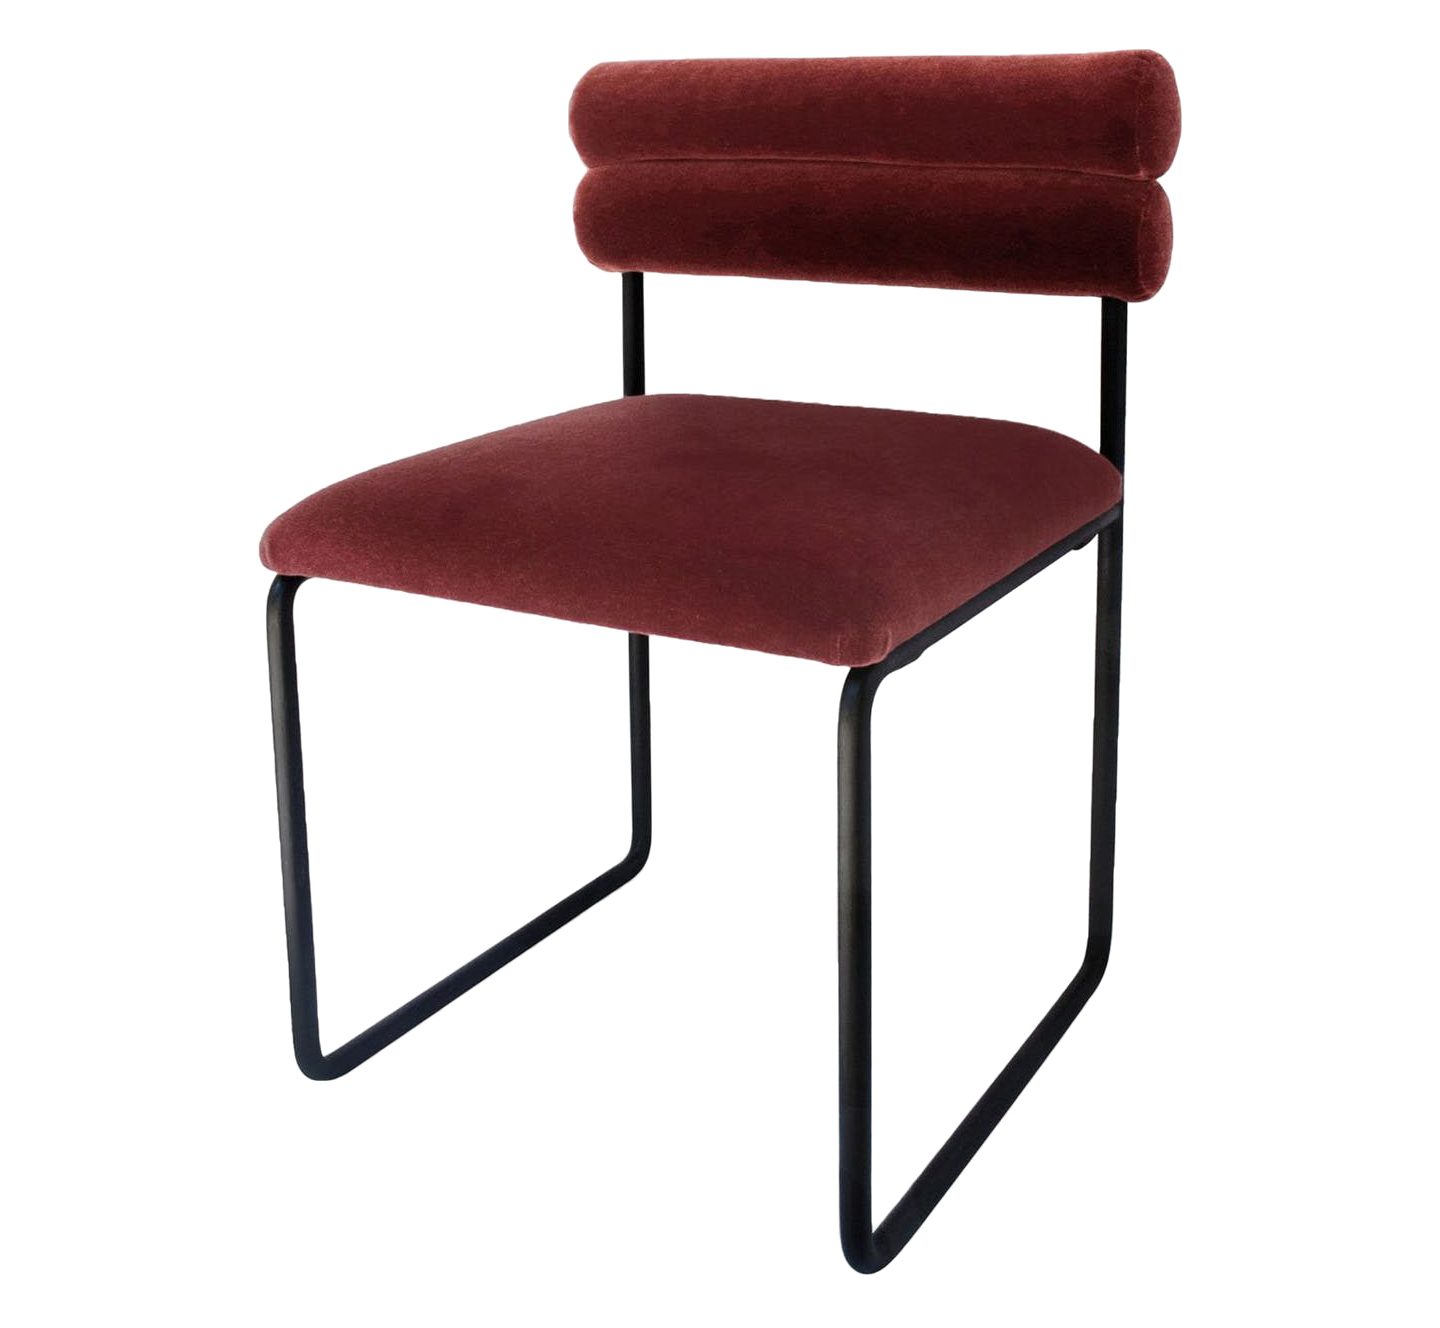 Bobby Double Bolster Dining Chair.Available in dining height, counter height, and bar height. Shown in BRADLEY Elements Chopin Rootbeer Mohair.Available inCOM/COL(2 yds solid / 40 sf).Base Finish: Satin Black,powder coated. Lead time:8-10 weeks.